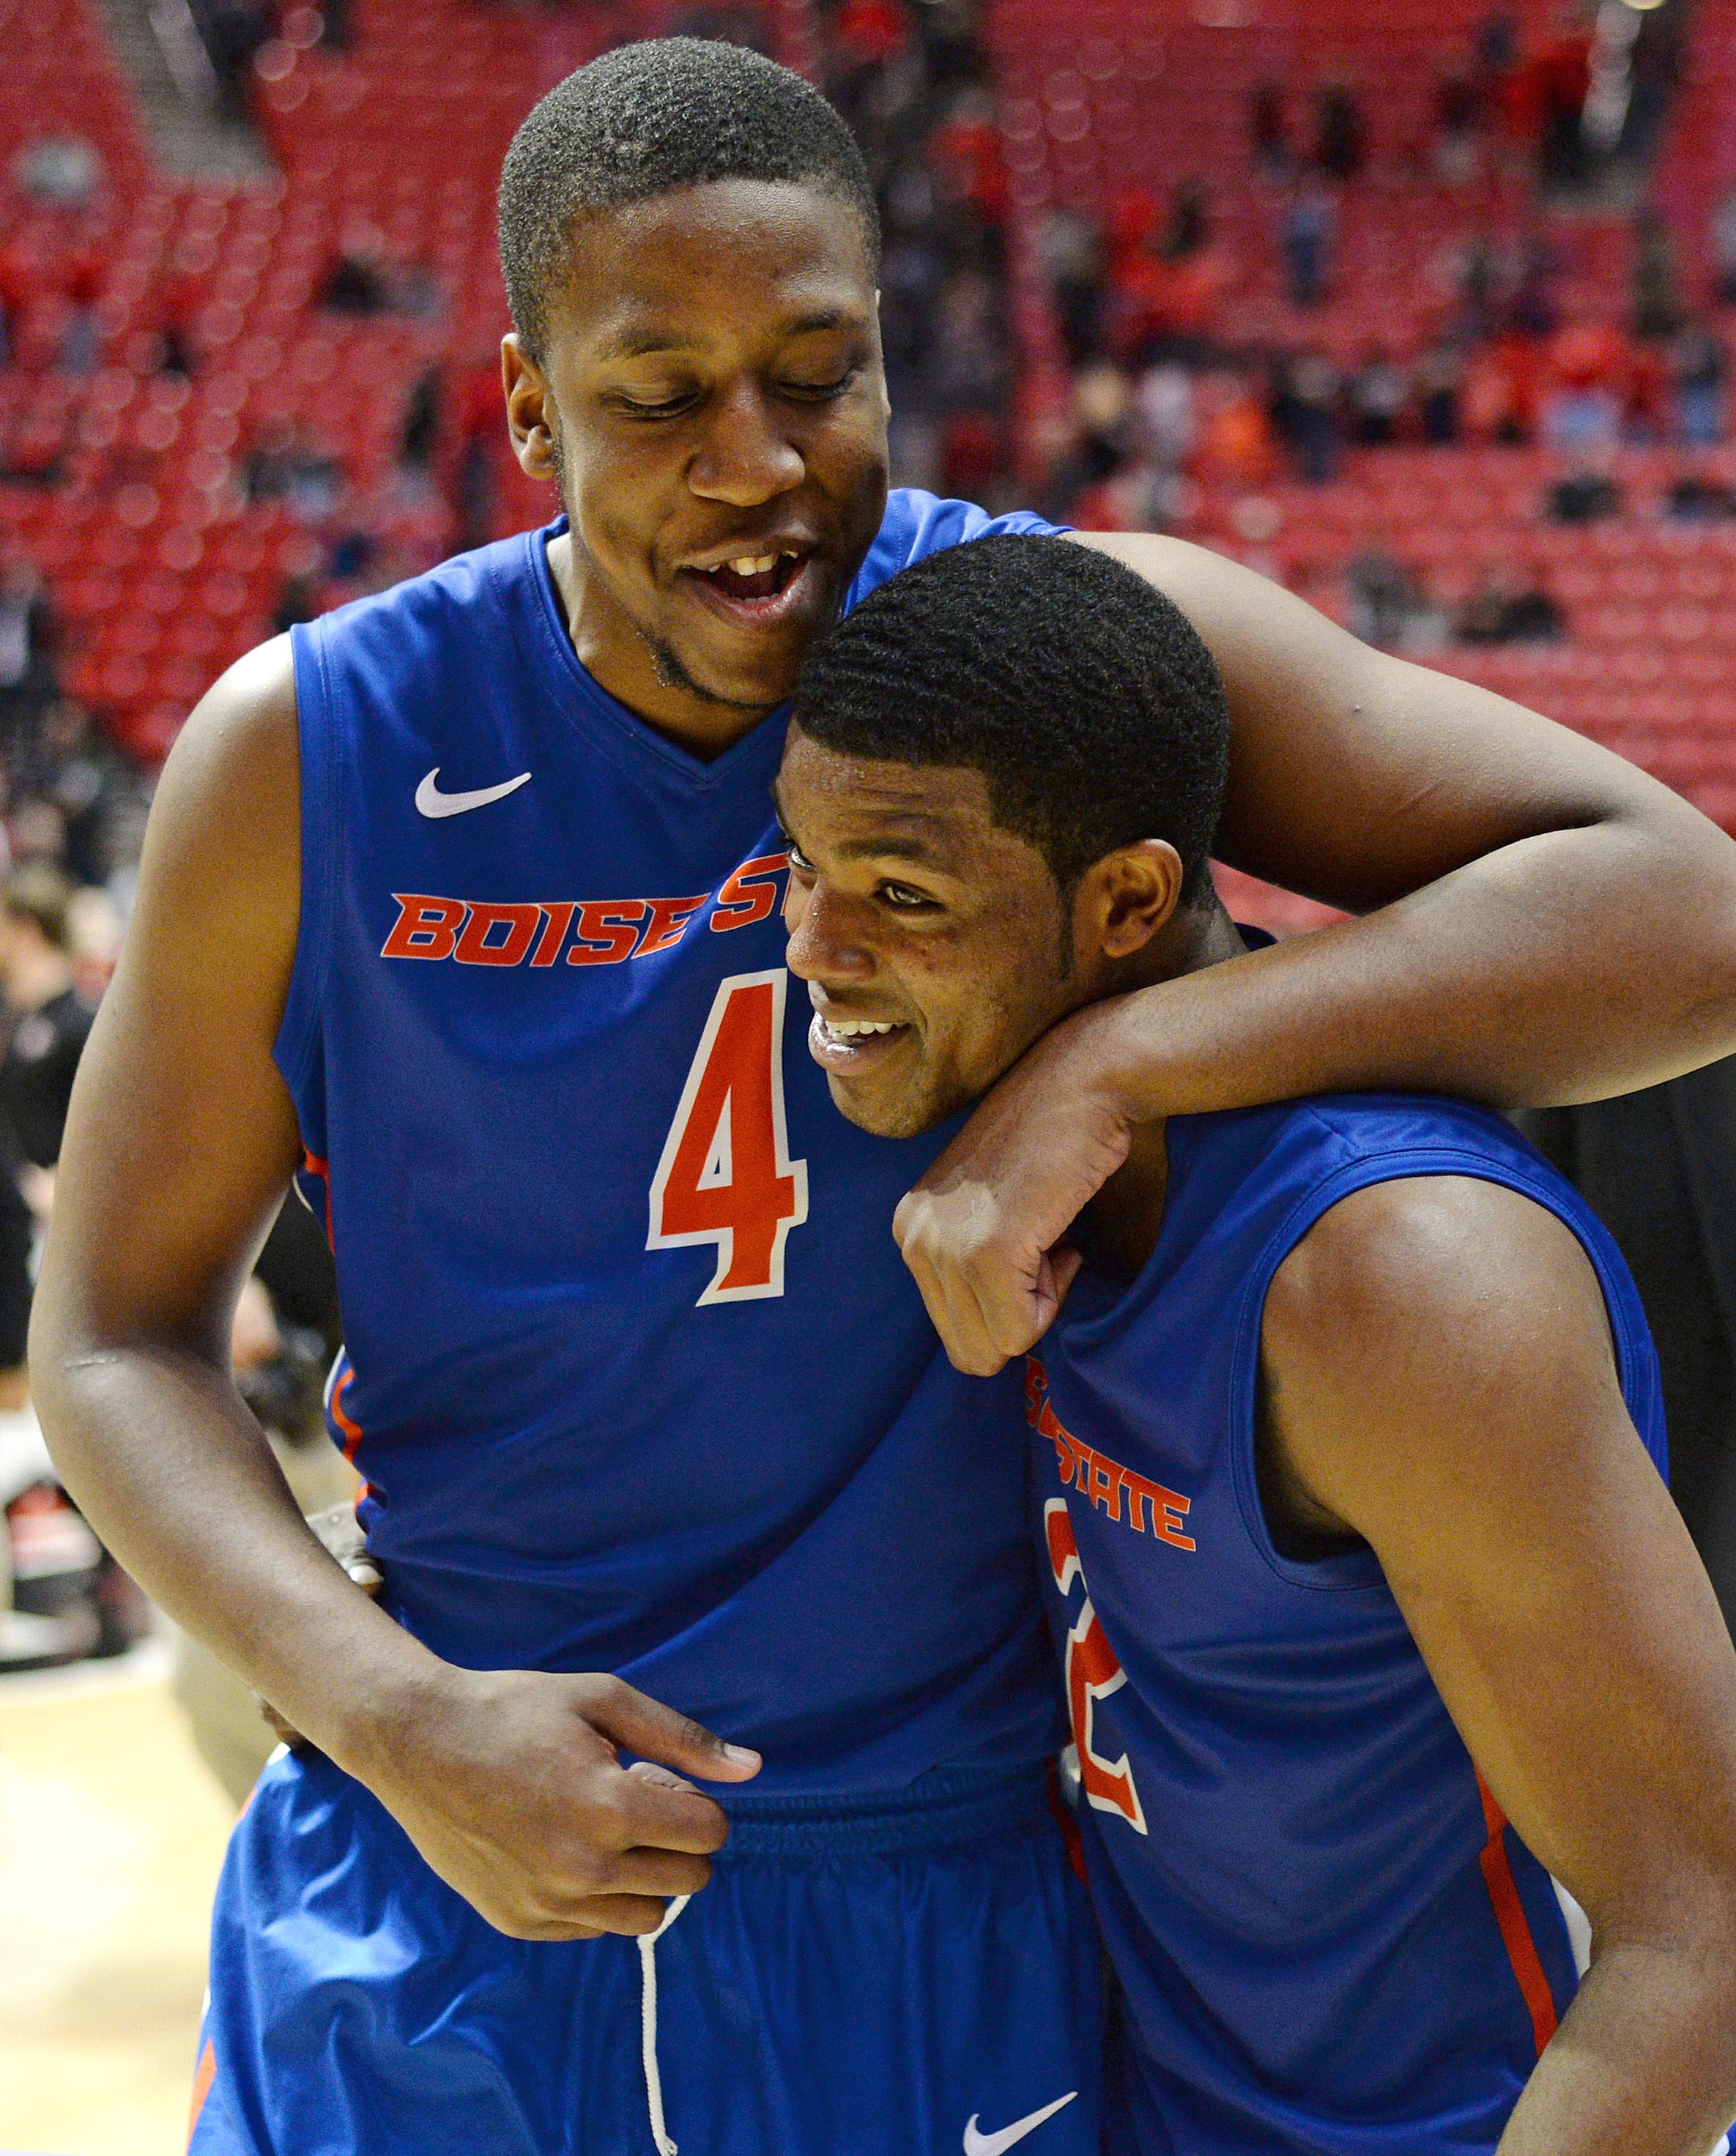 Feb 28, 2015; San Diego, CA, USA; Boise State Broncos center Kevin Allen (4) hugs guard Derrick Marks (2) after the Broncos defeated the San Diego State Aztecs 56-46 at Viejas Arena at Aztec Bowl. (Jake Roth-USA TODAY Sports)